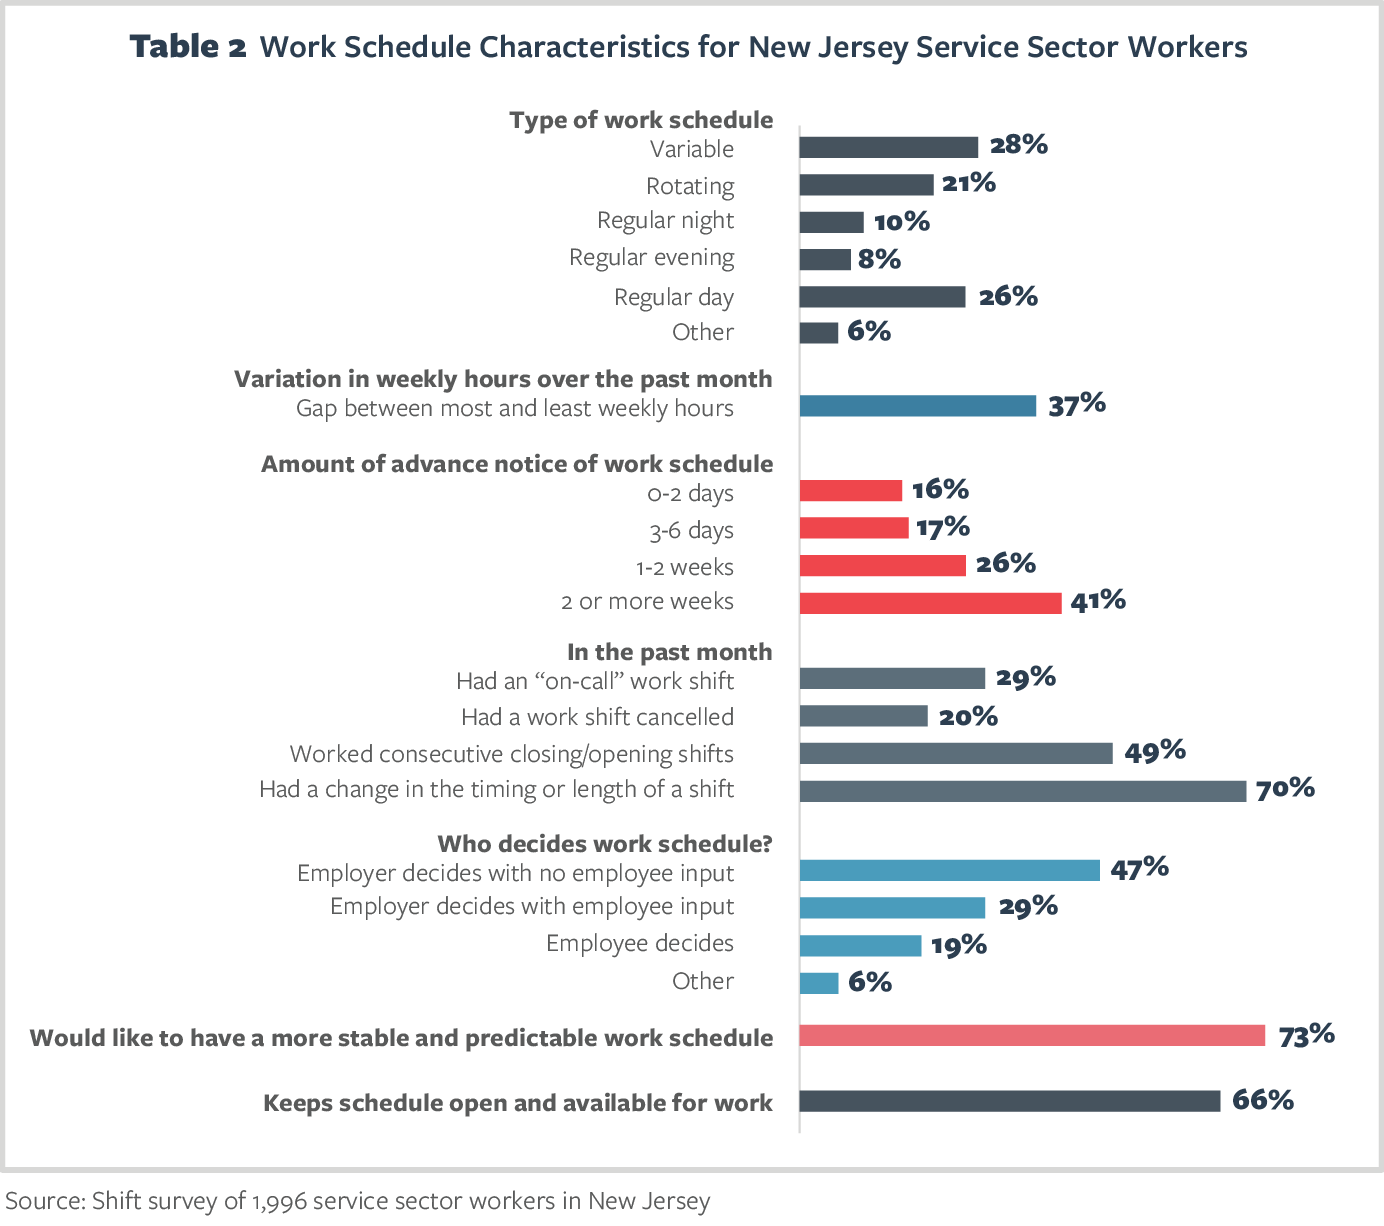 Table 2 Work Schedule Characteristics for New Jersey Service Sector Workers